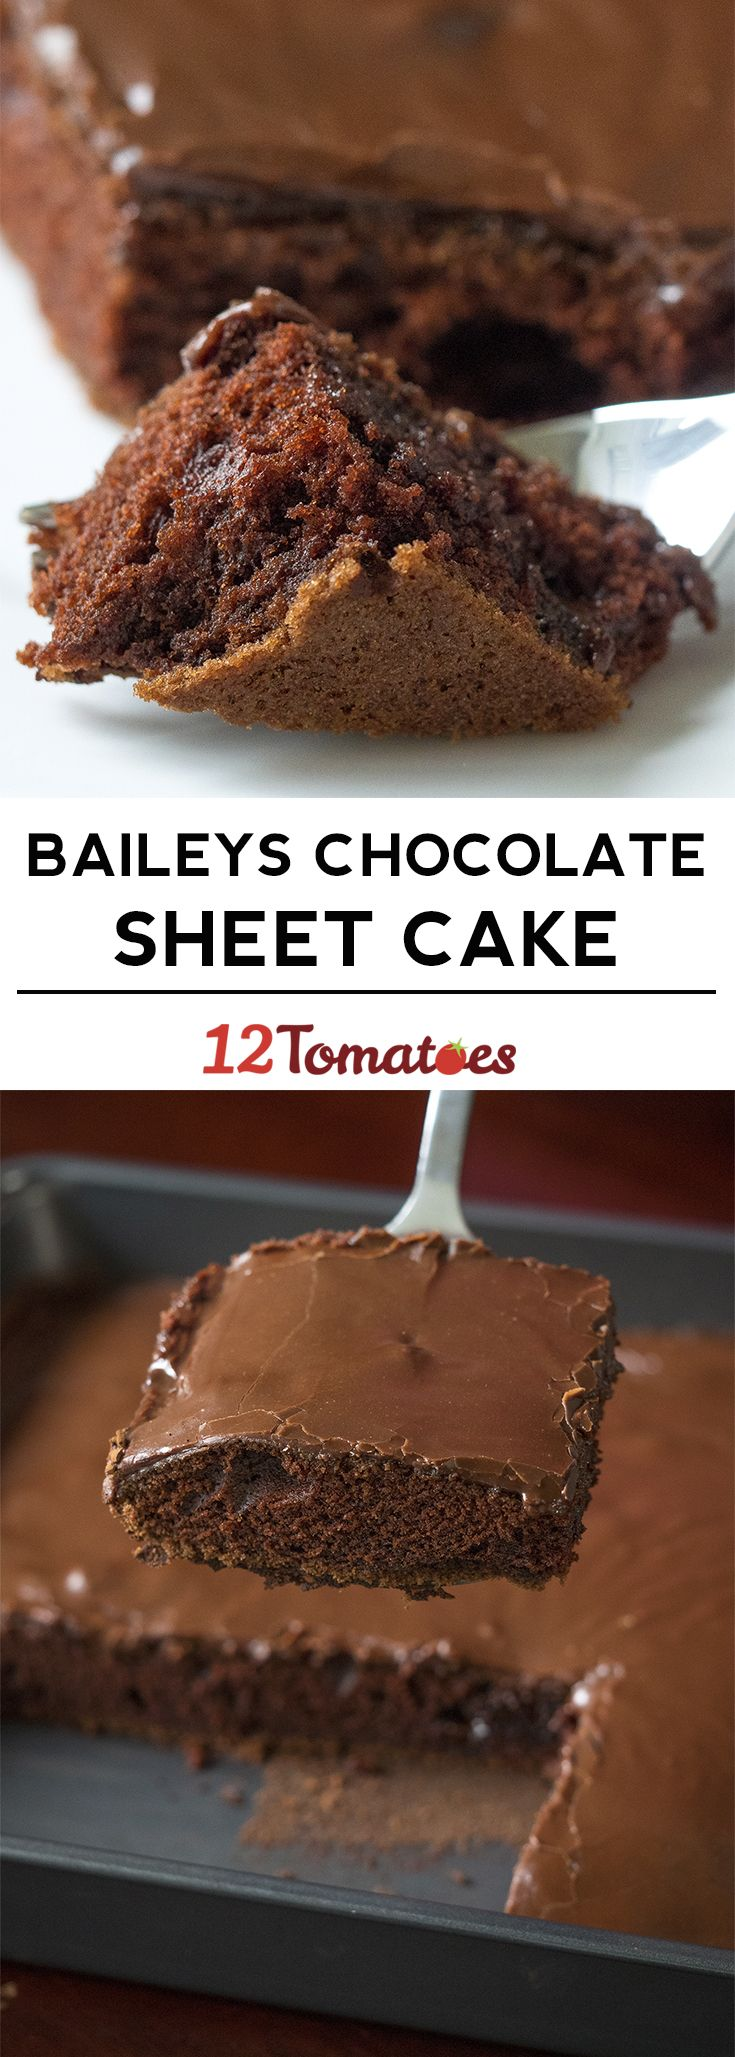 Baileys Chocolate Sheet Cake